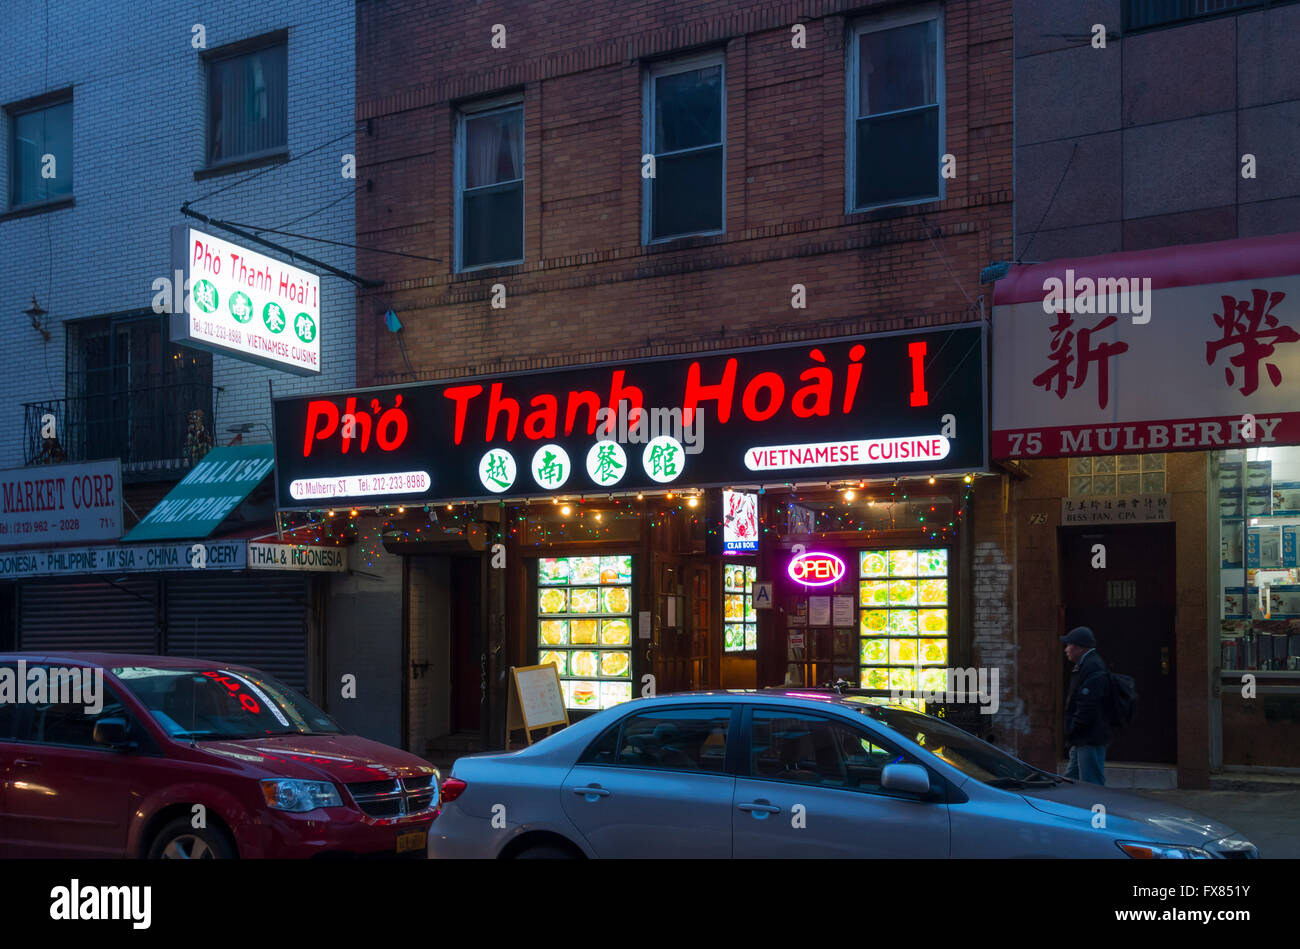 Pho Thanh Hoai 1 Vietnamese Restaurant In Chinatown In New